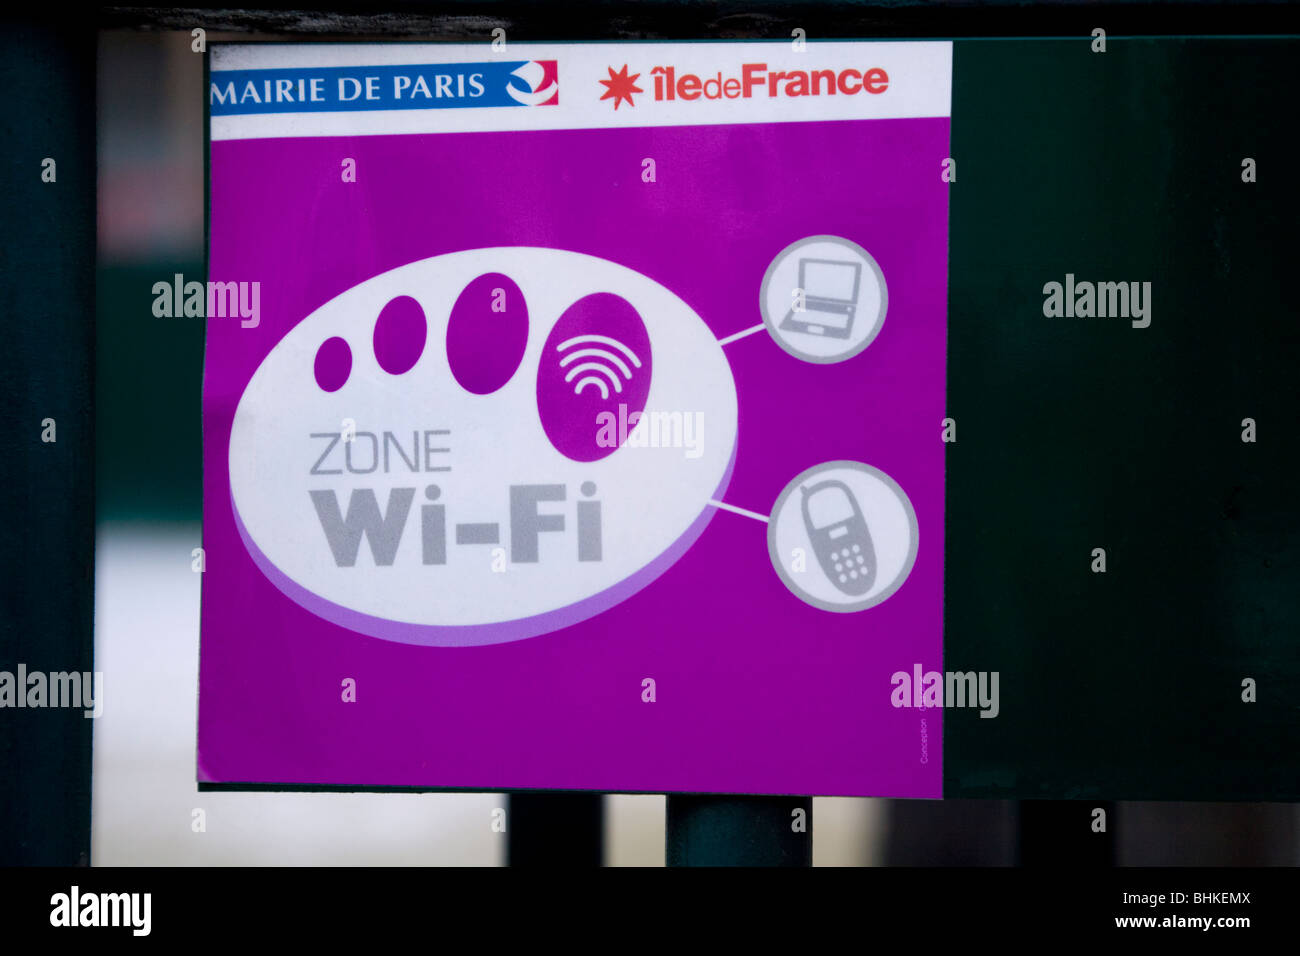 Sign to indicate a wifi internet hotspot / hot spot internet connection service in a public park / open space. Paris, - Stock Image